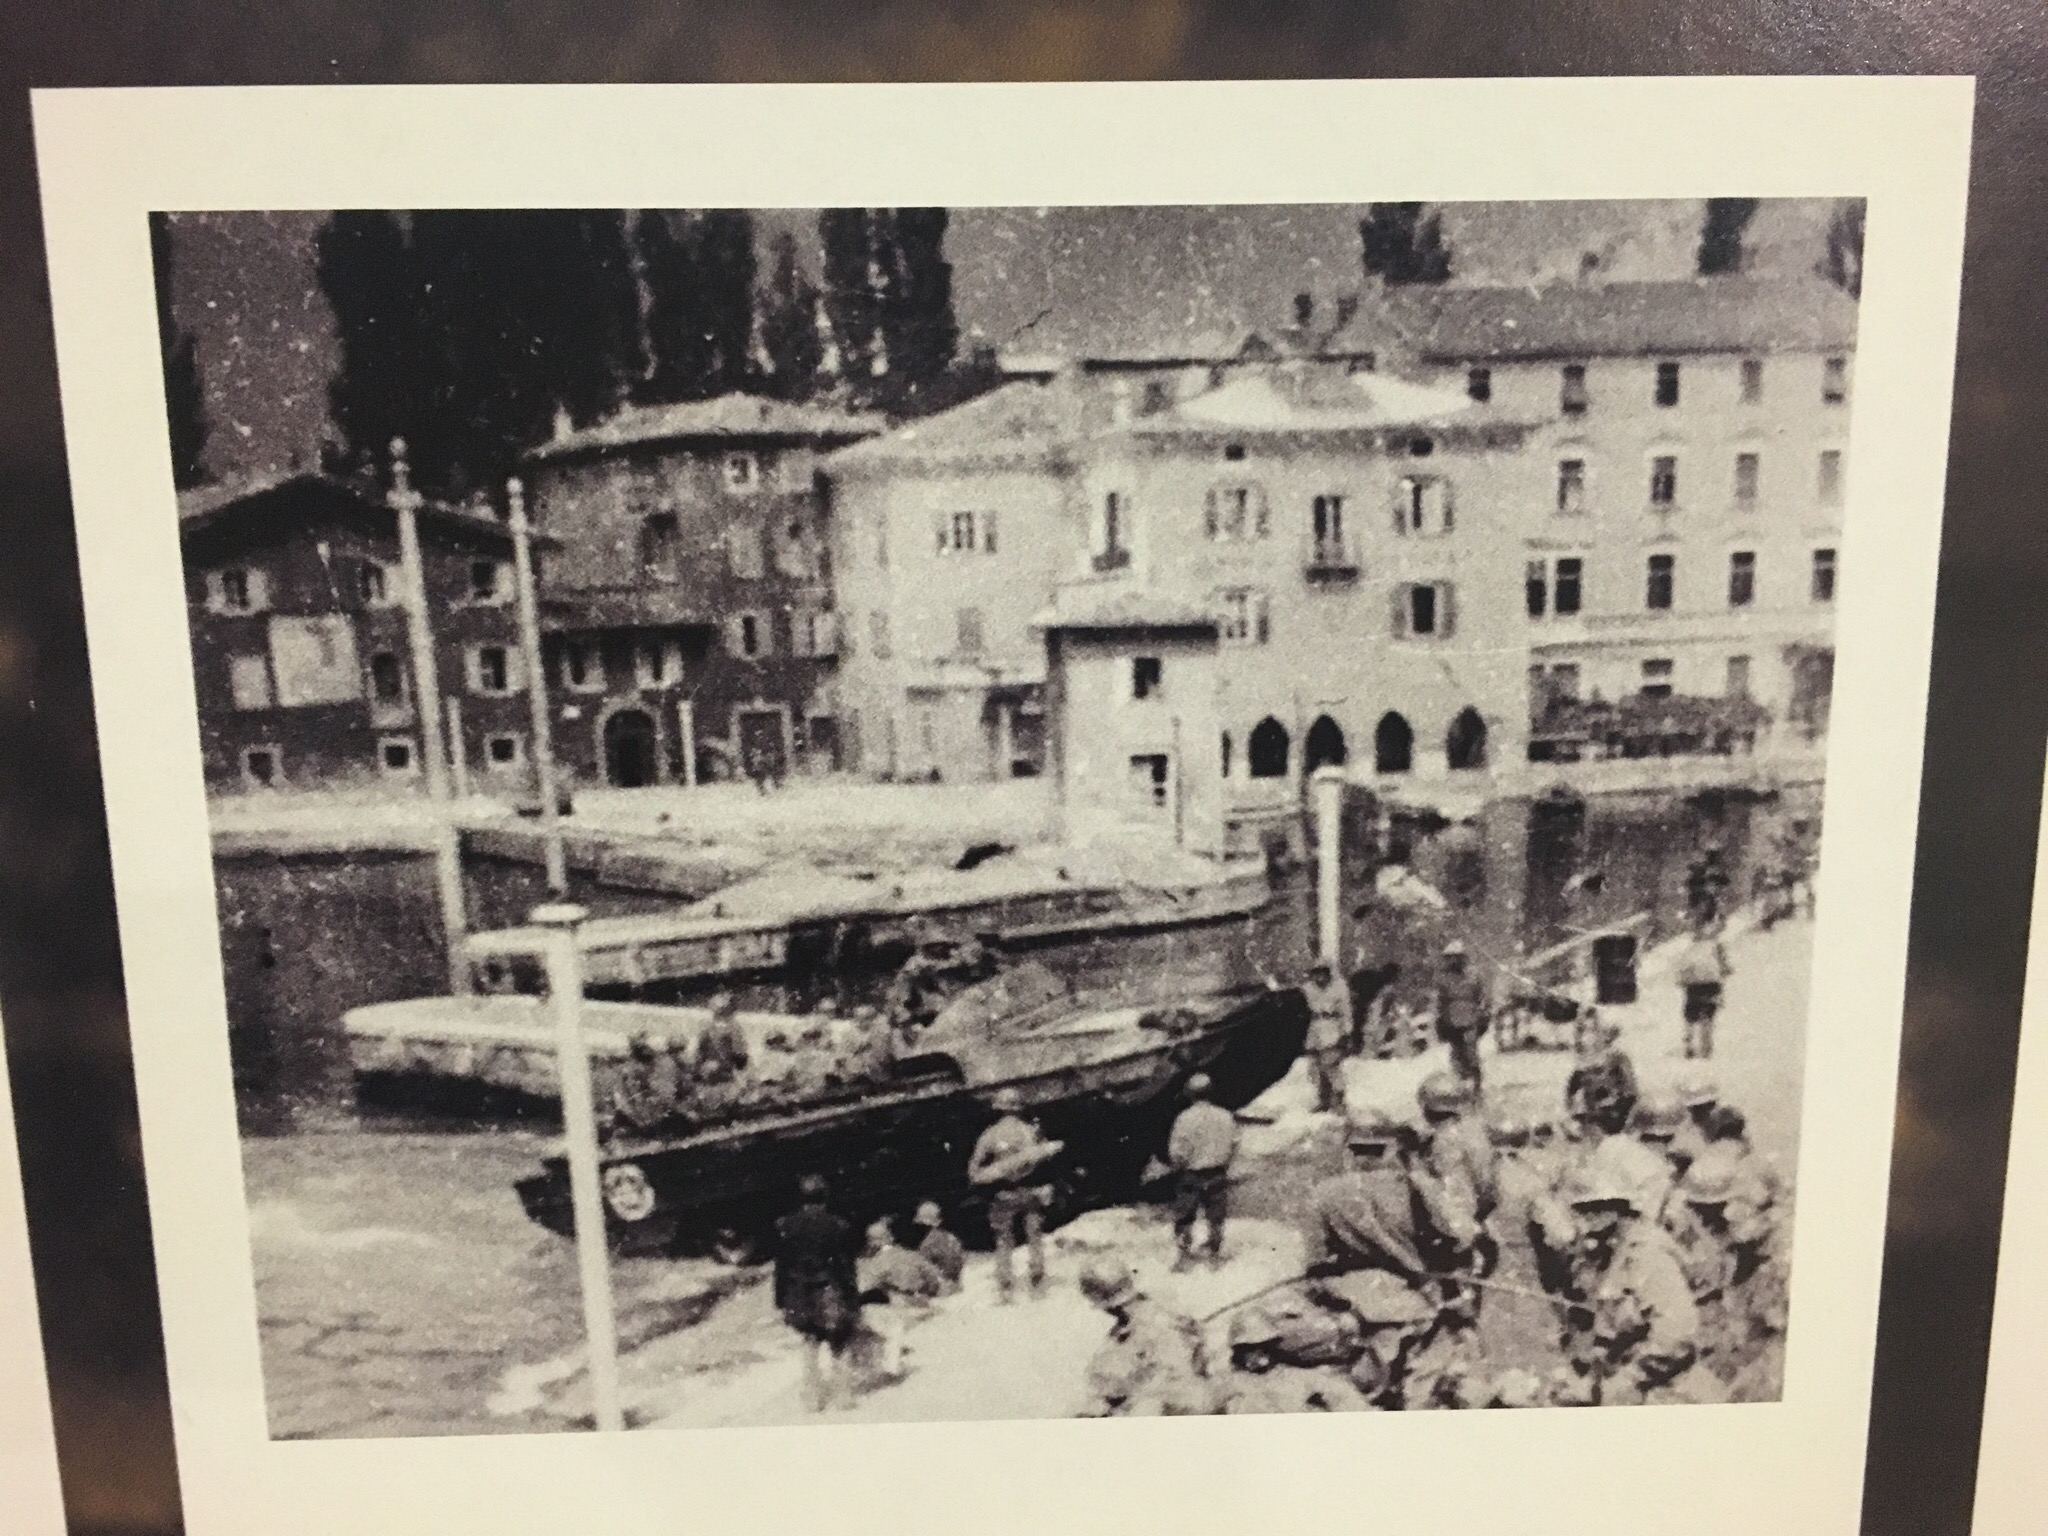 A view of a 10th Mountain Division amphibious landing in Torbole, Italy (Courtesy of the Museum Riva de Garda)